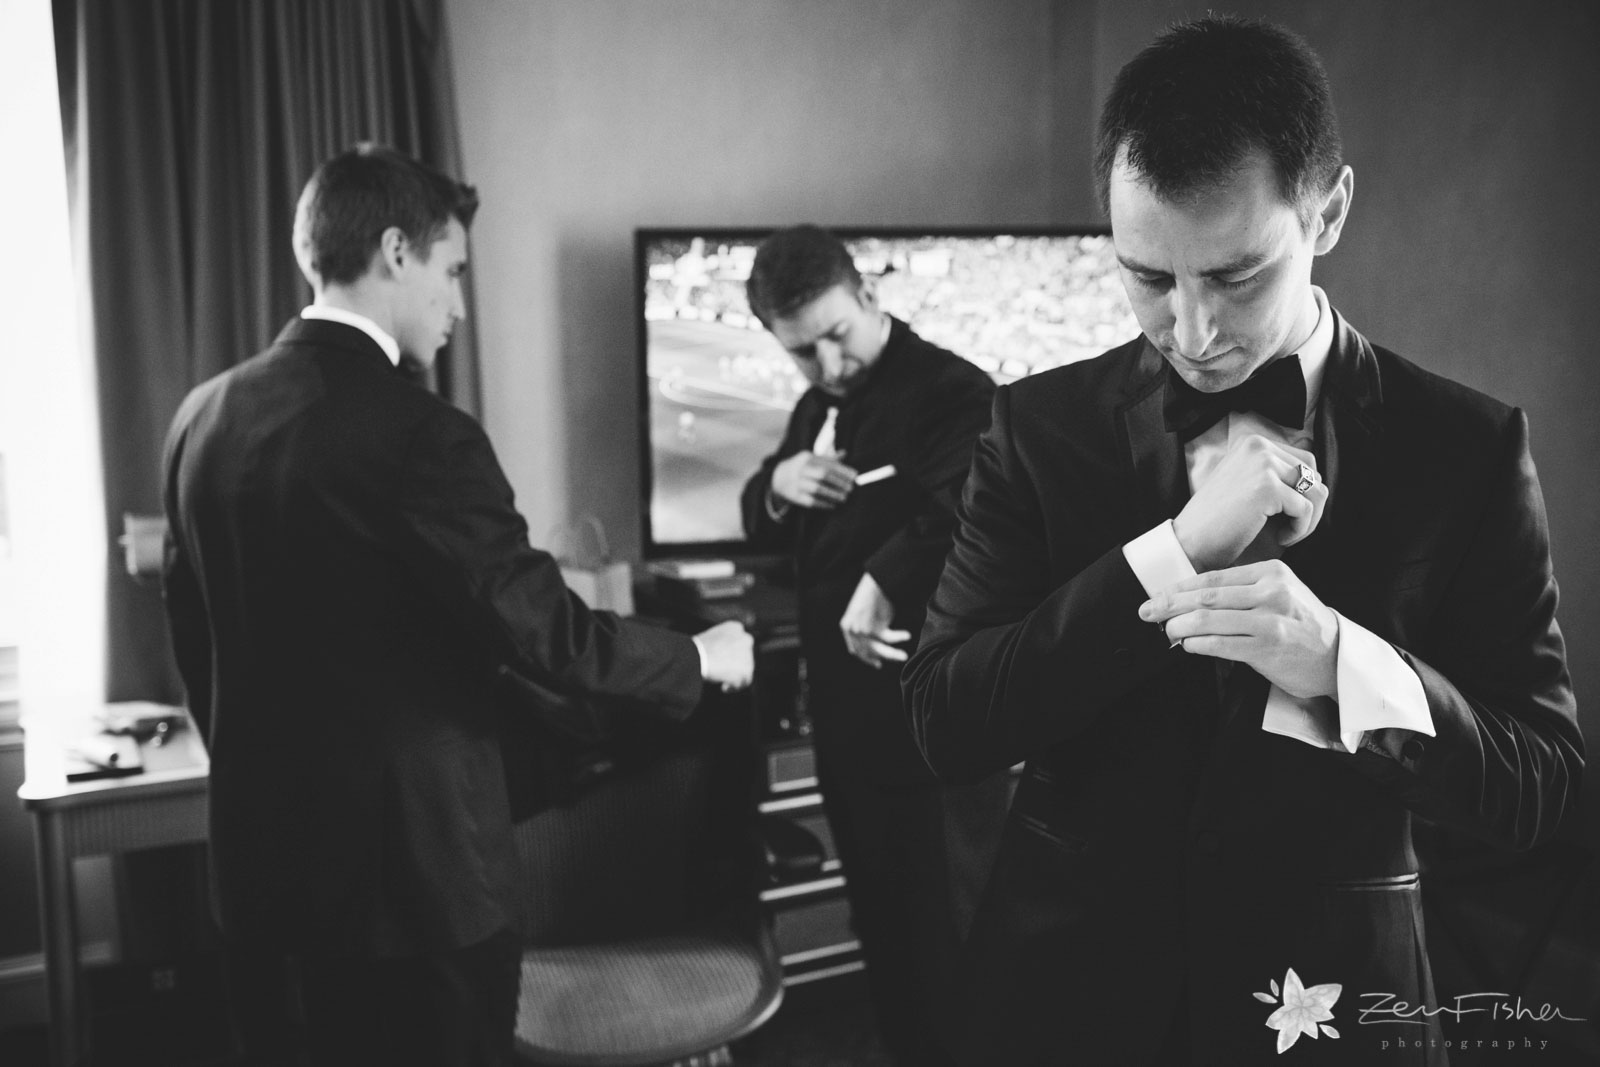 Groom and groomsmen at hotel putting final touches on their tuxes, pocket squares, and cuff links.